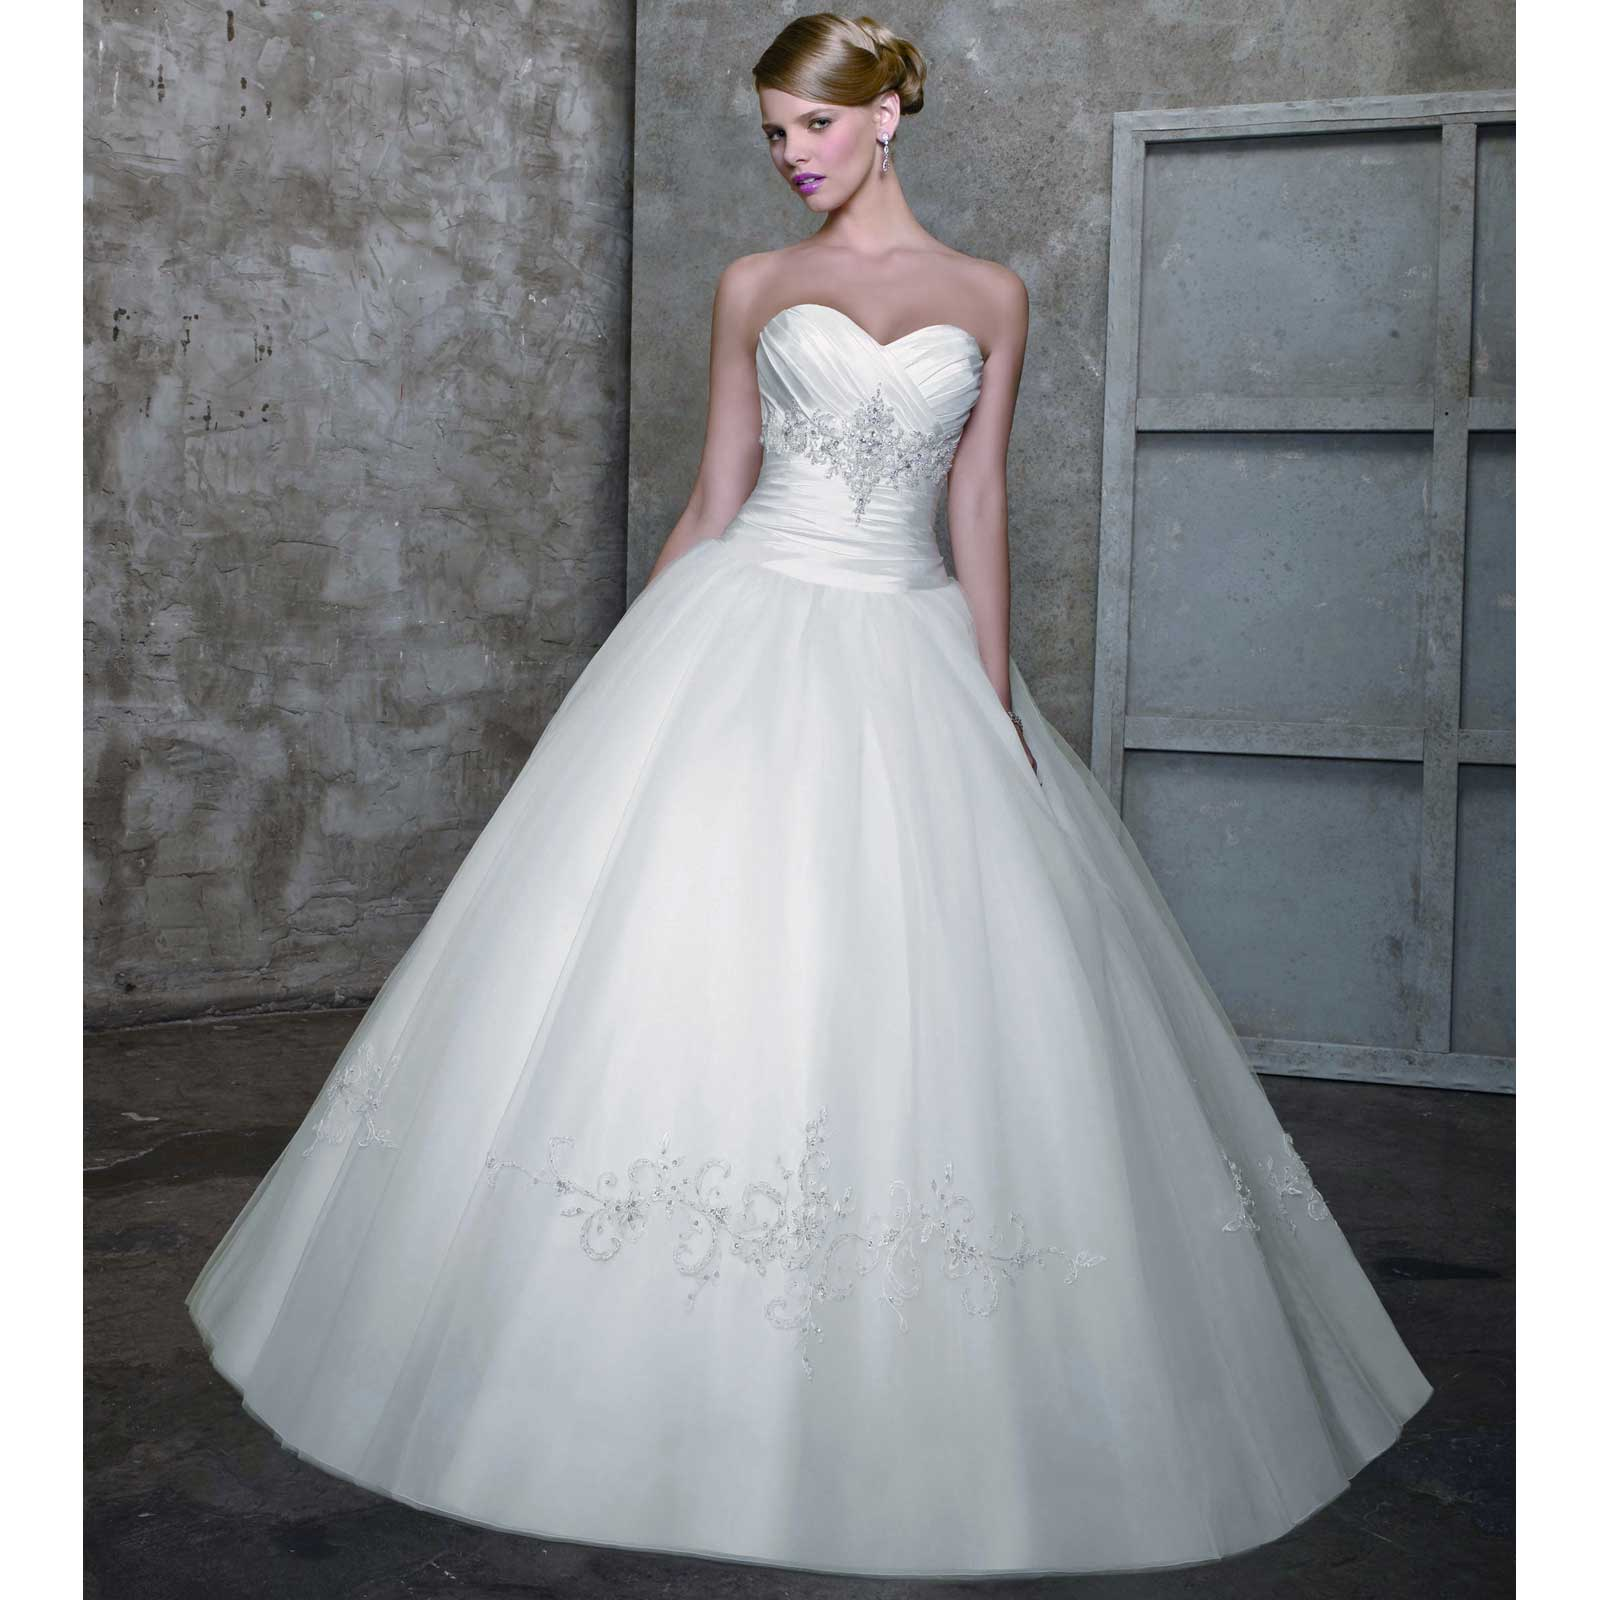 The Bridal House: Wedding Gowns 101: Bridal Ball Gowns